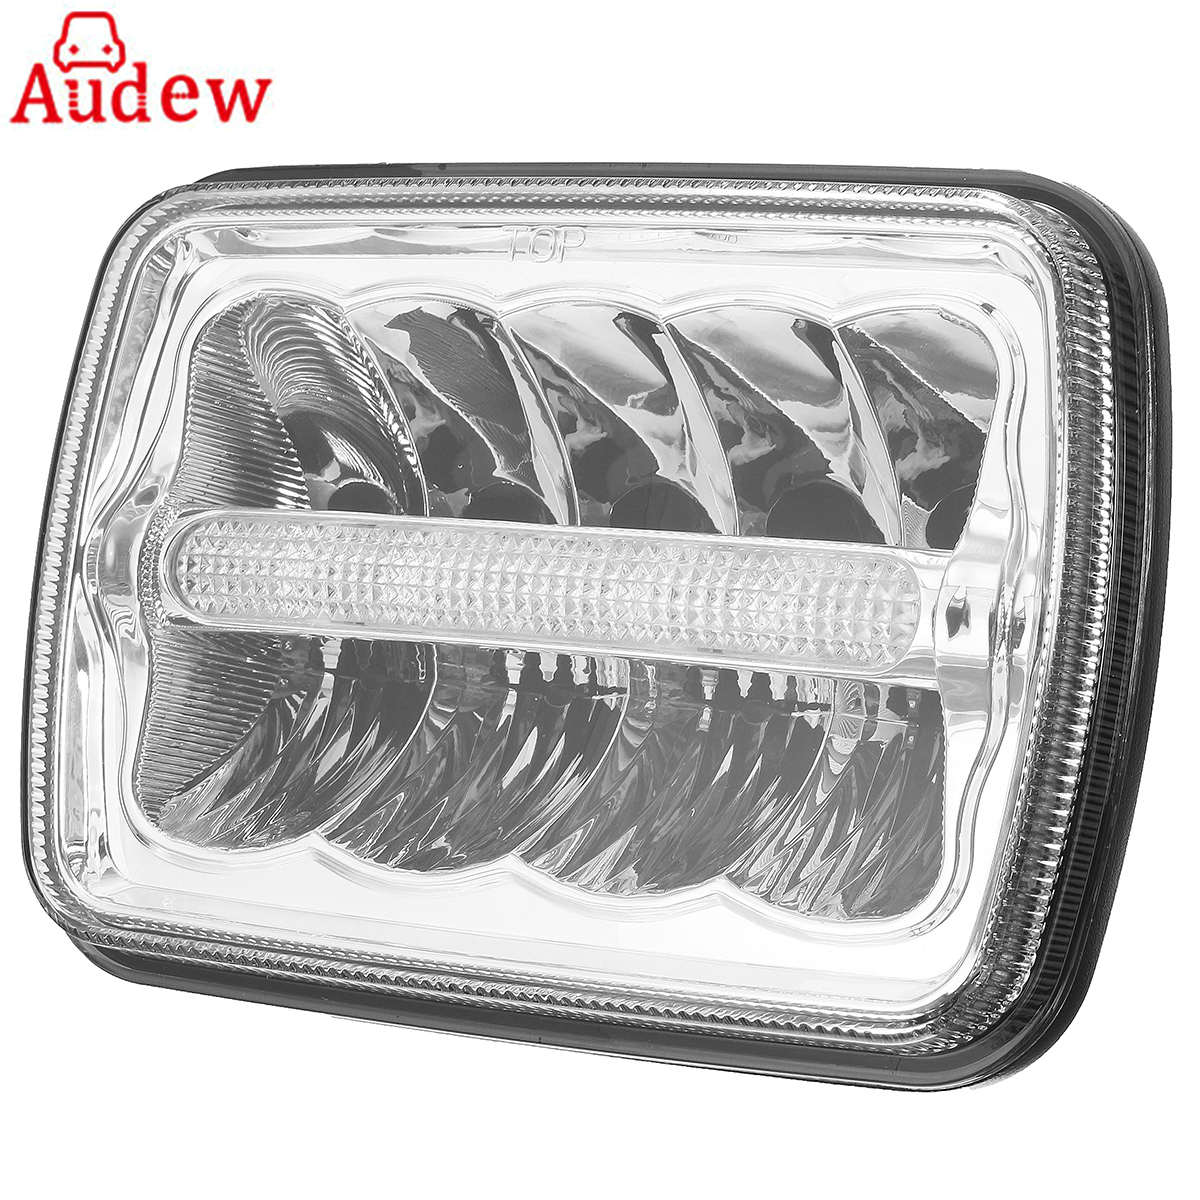 1Pcs 7x6 Inch Car LED Headlights H4 Bulbs XDR9 Crystal Clear Sealed Beam Headlamp w/DRL for Jeep/wrangler